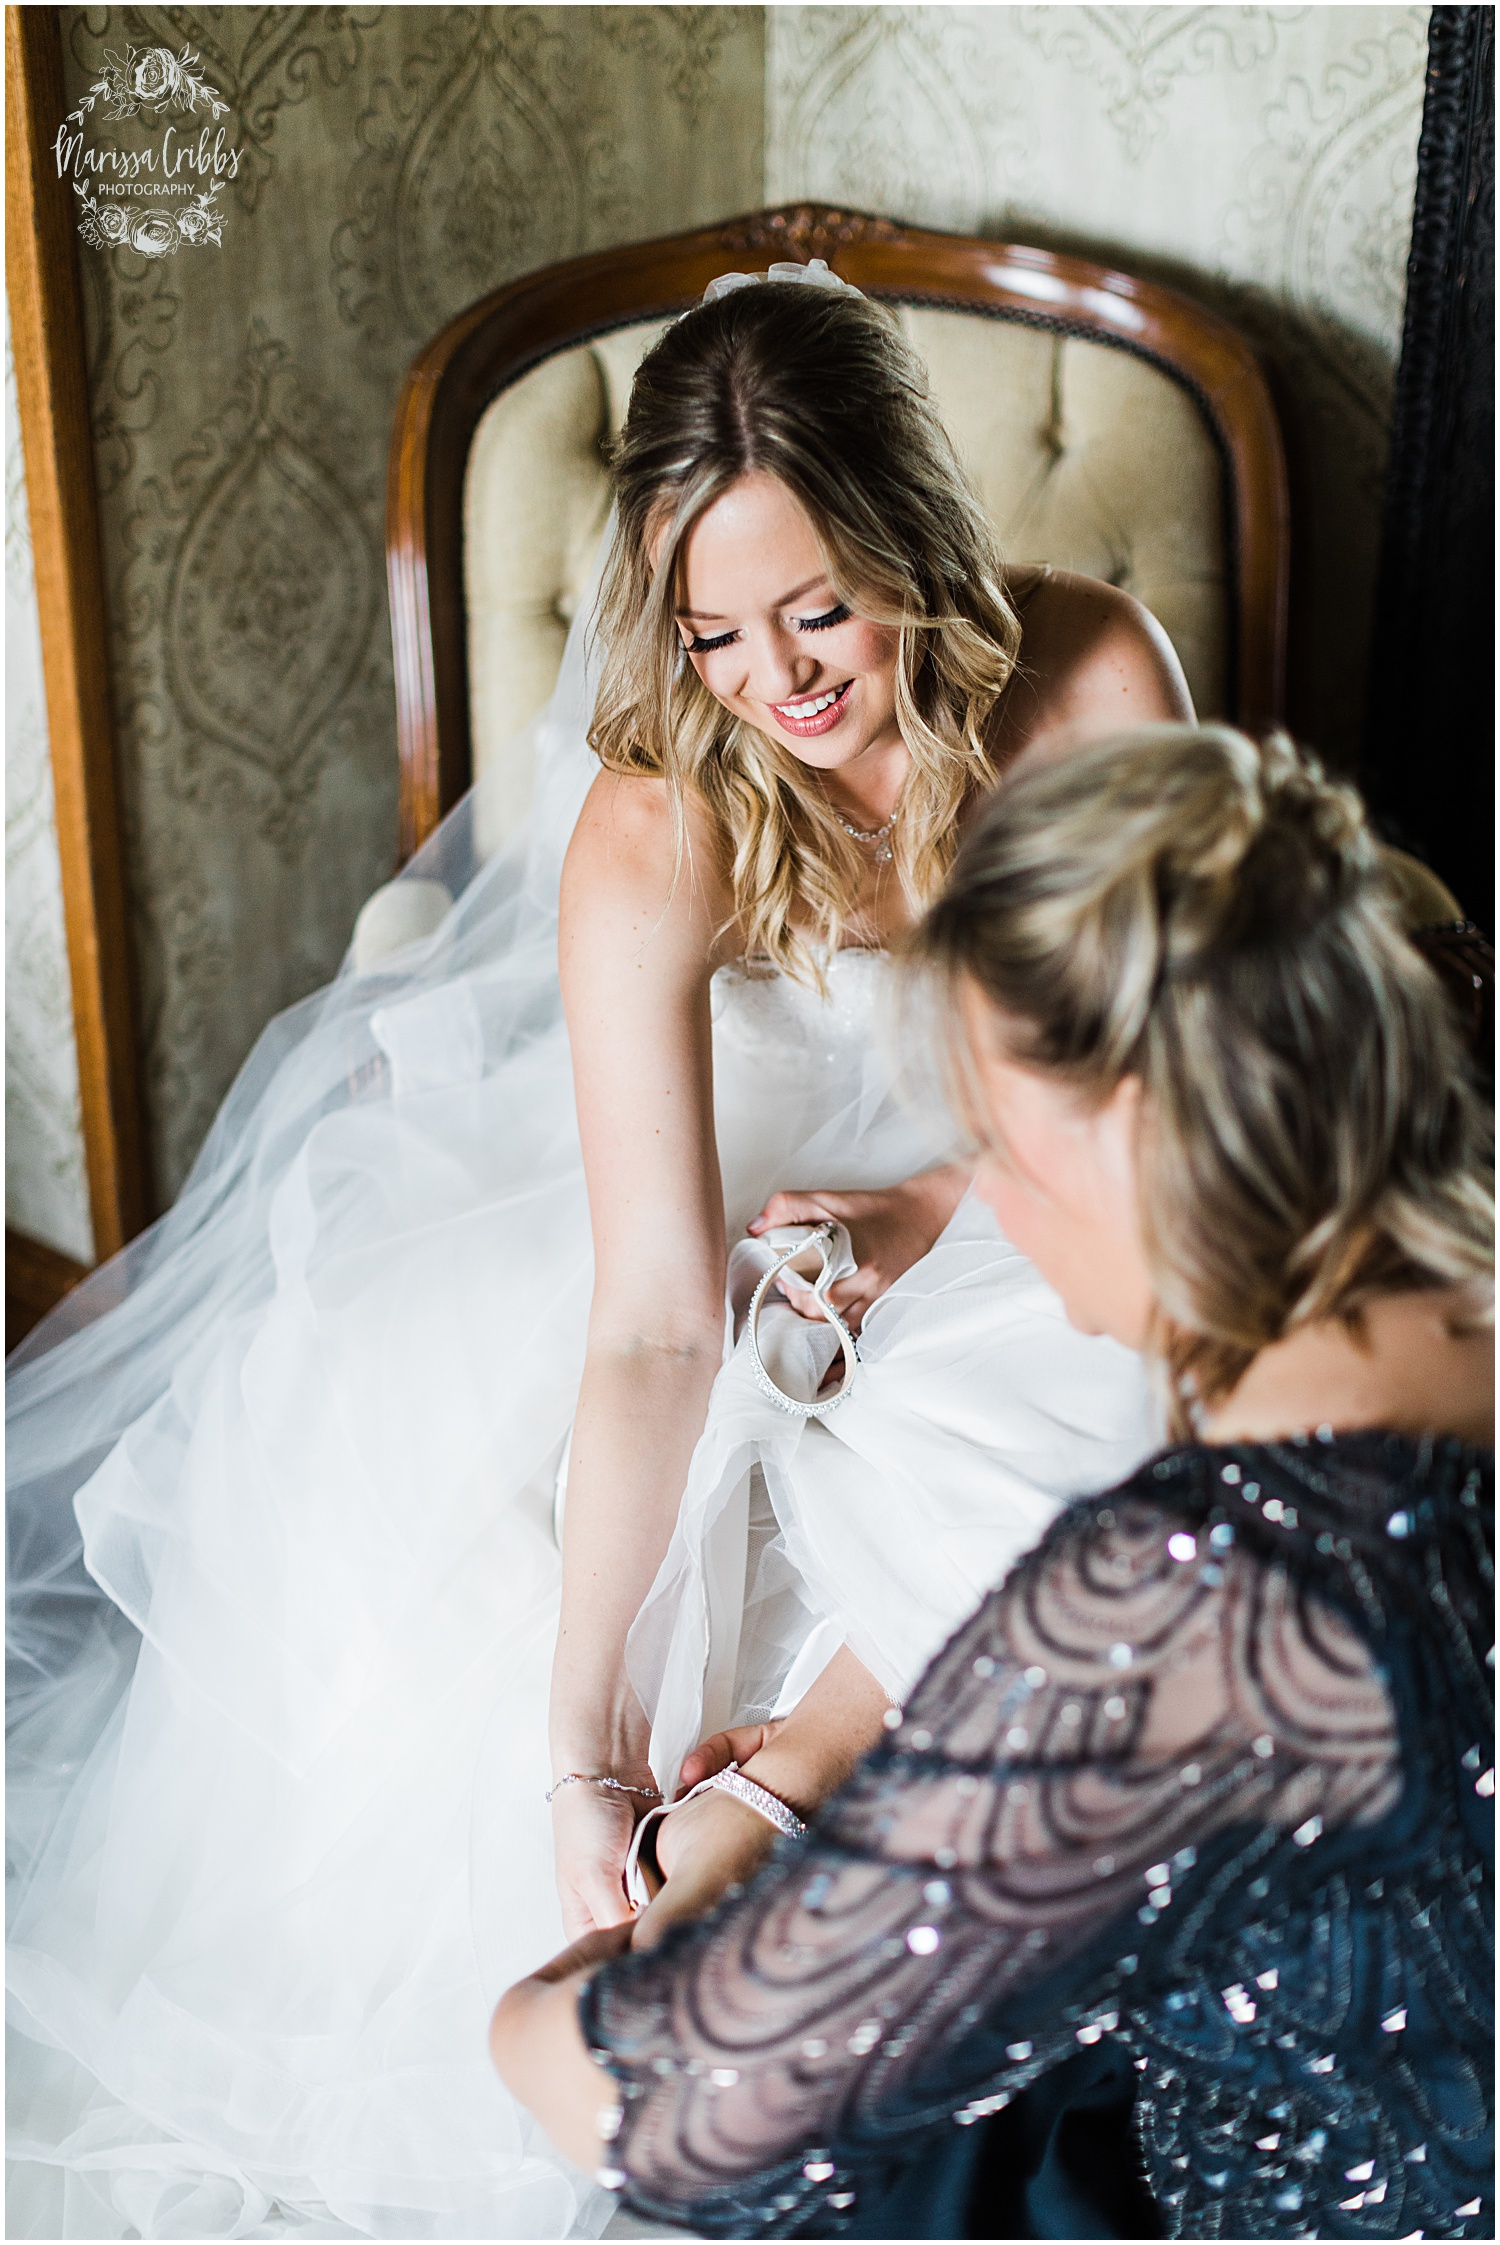 BEKAH & CHRIS MARRIED BLOG | 1890 EVENT SPACE WEDDING | MARISSA CRIBBS PHOTOGRAPHY_8343.jpg